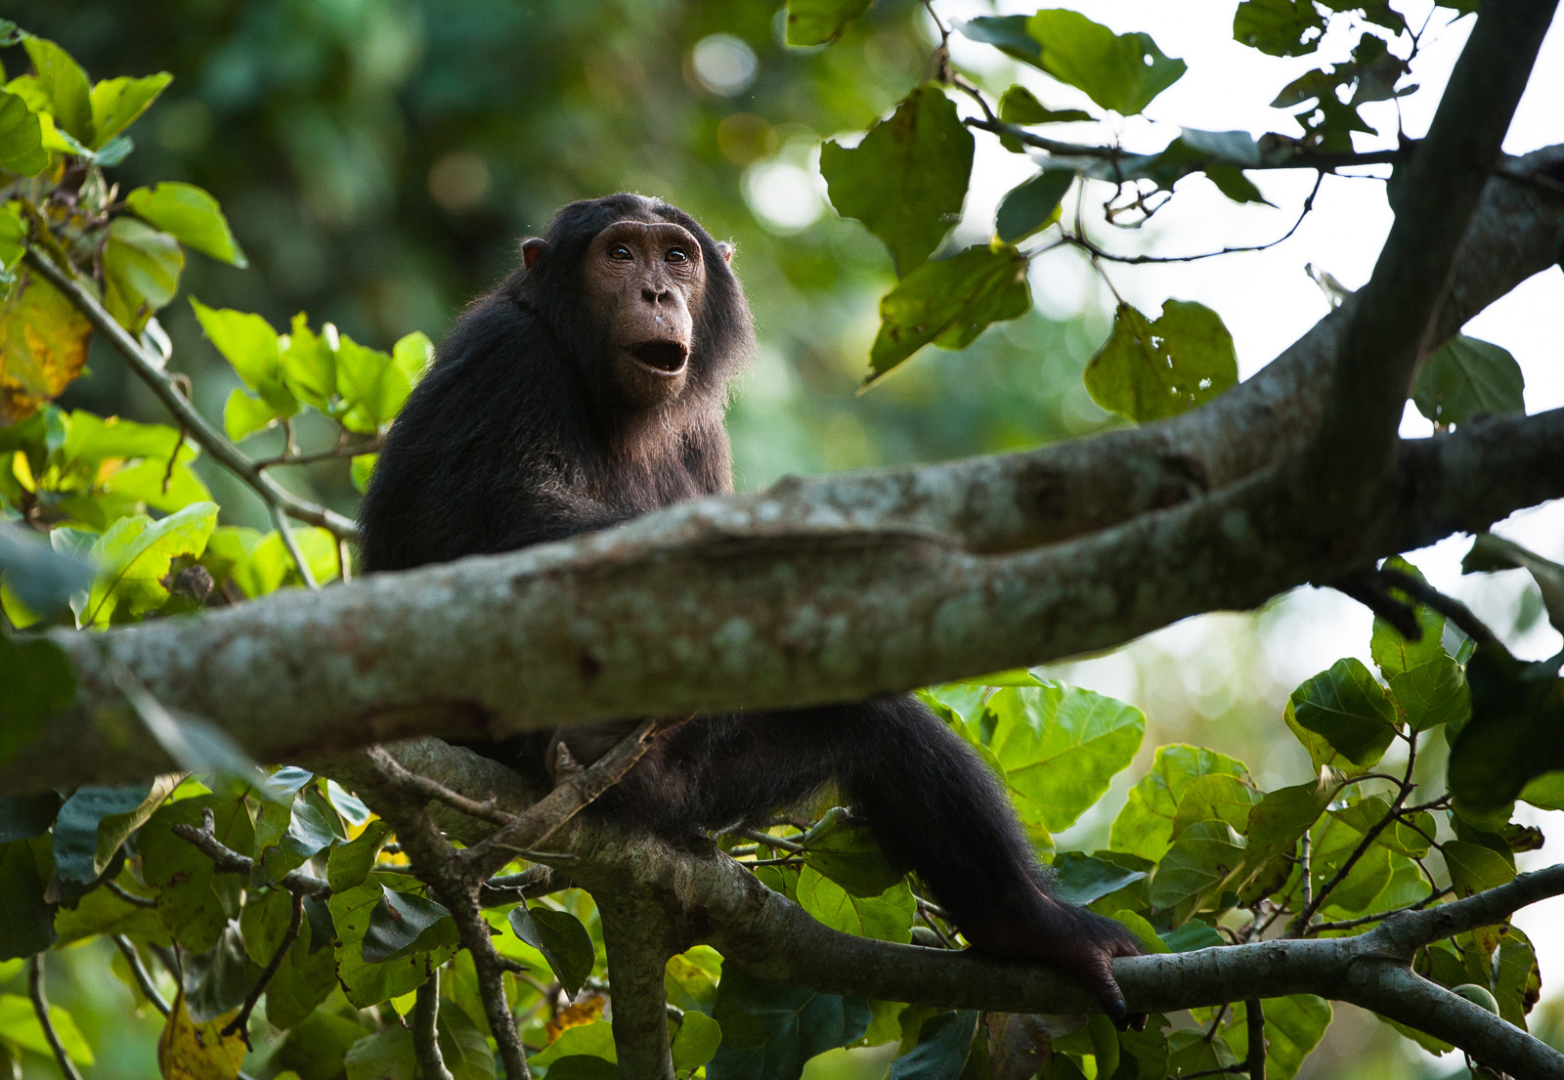 Chimpanzee, Queen Elizabeth National Park, Uganda